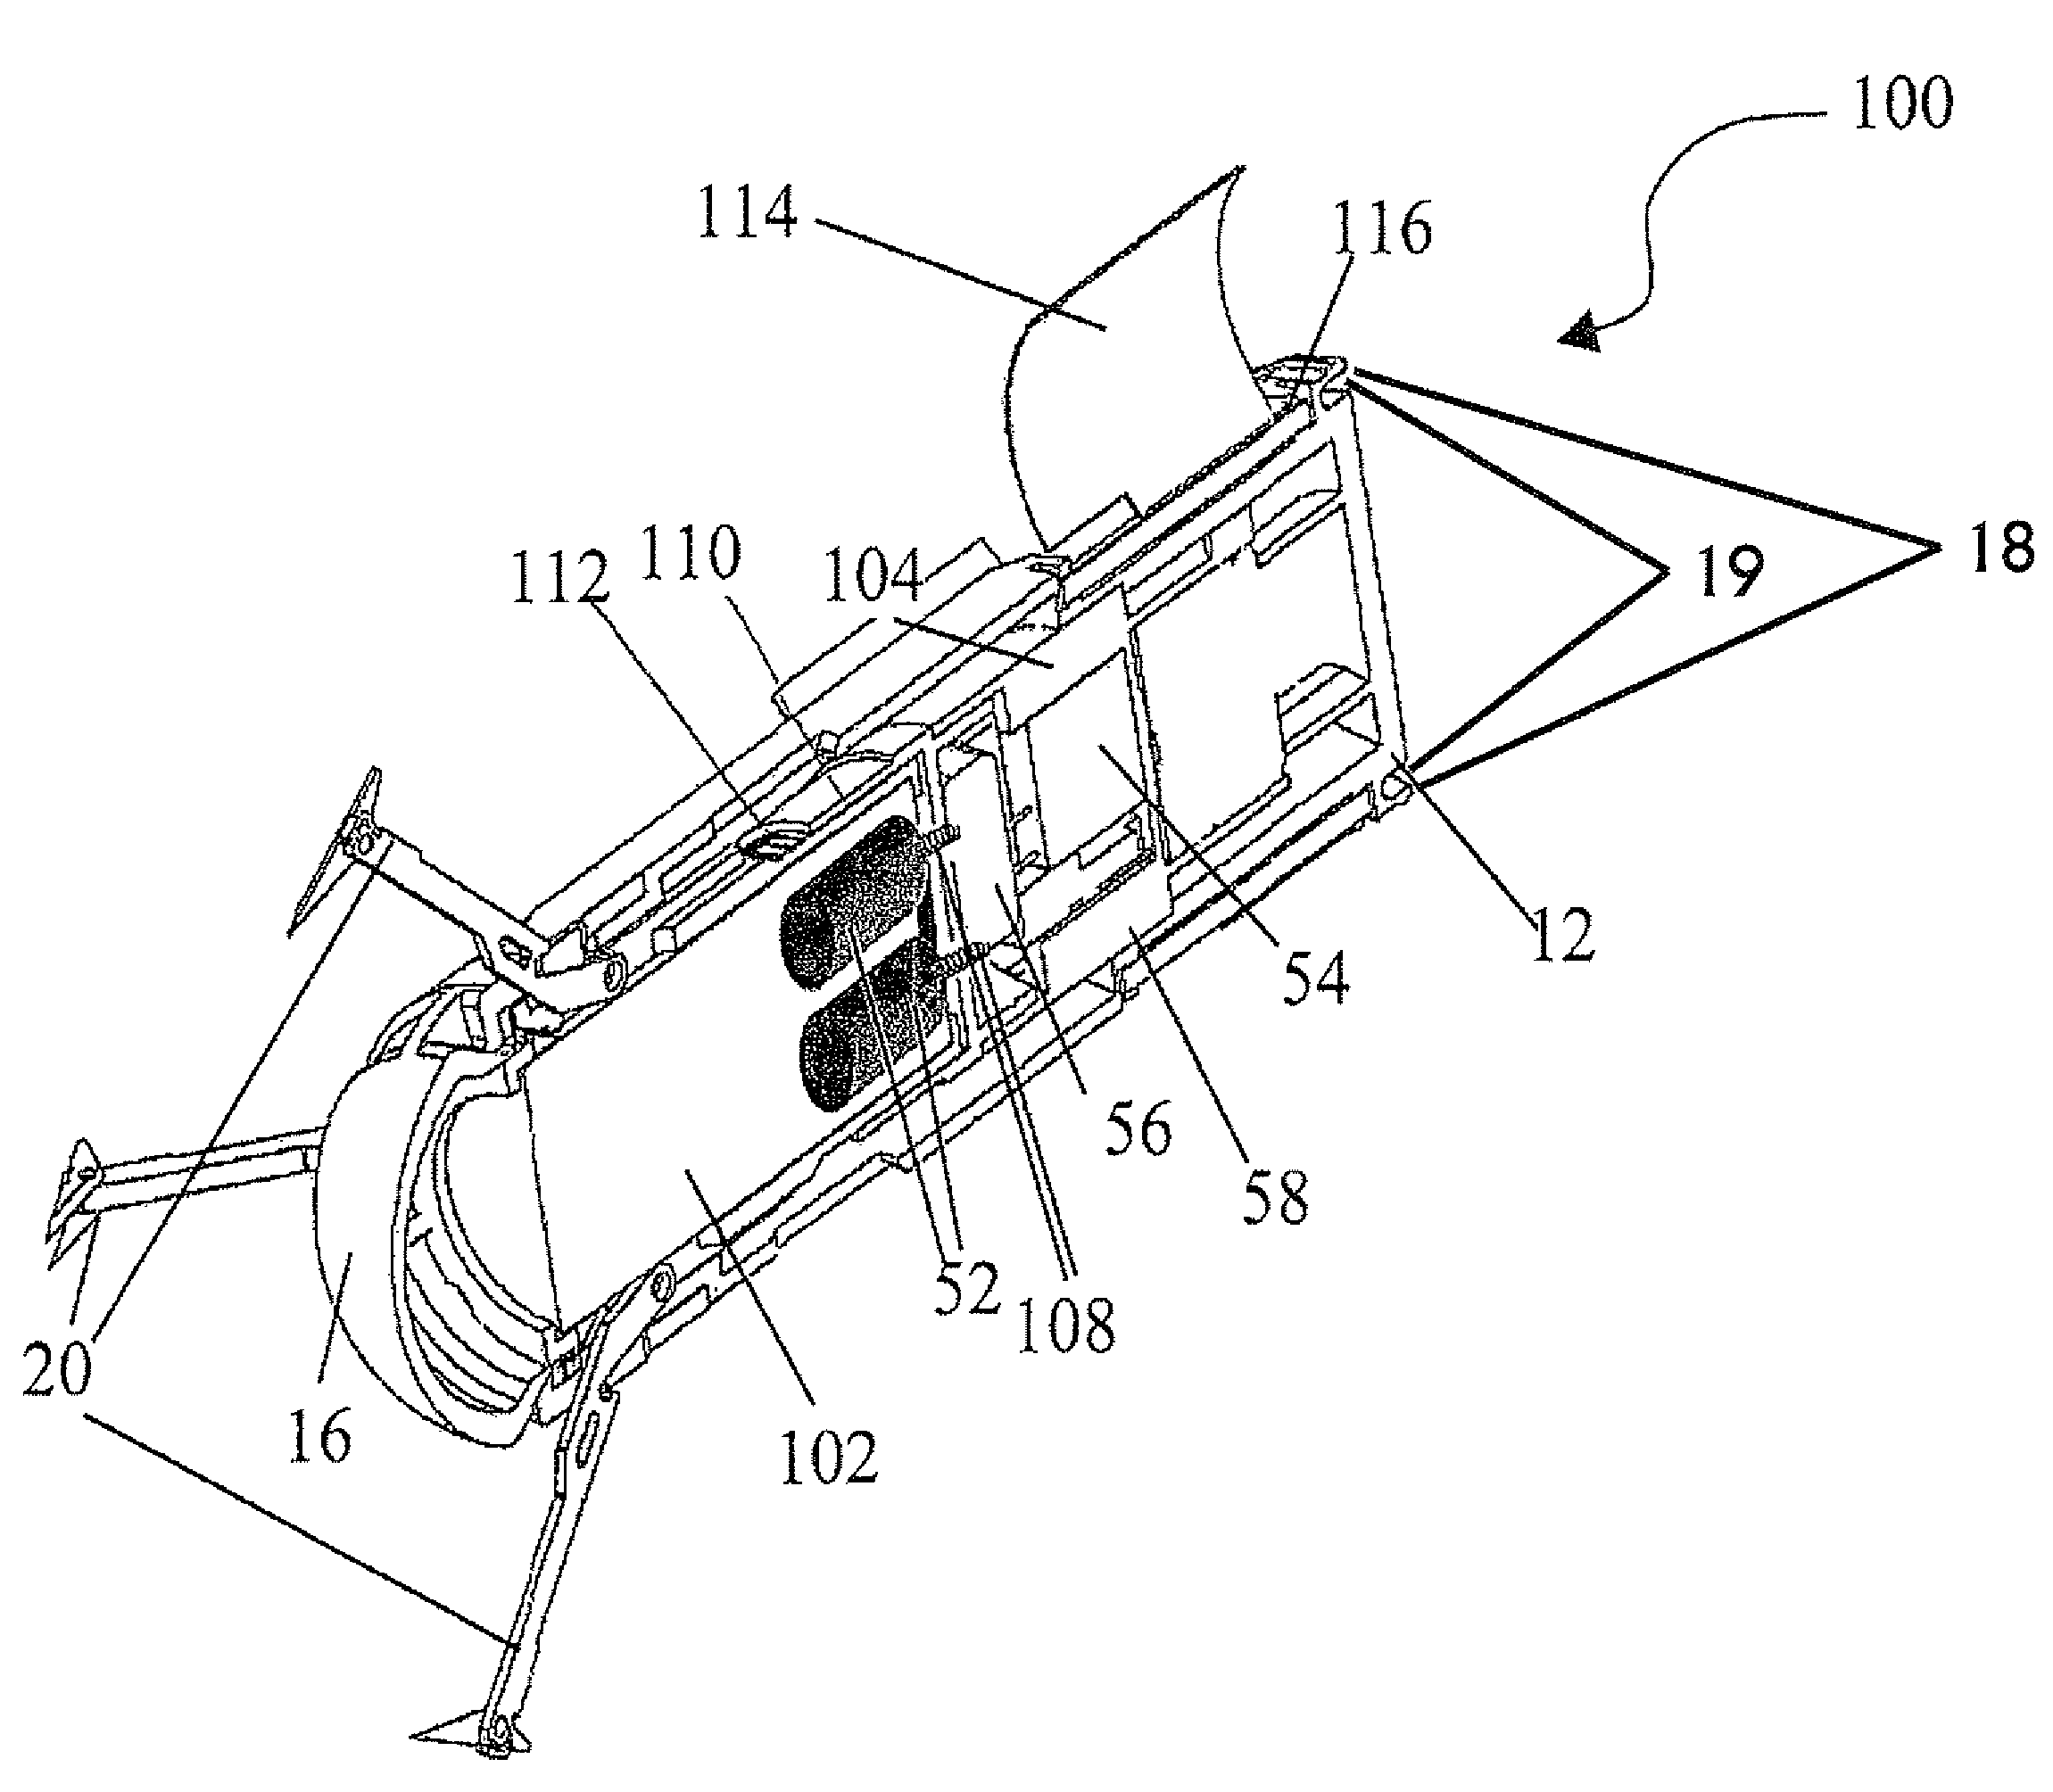 Brevet Us8342098 Non Lethal Wireless Stun Projectile System For 3v Electronic Gun Circuit Patent Drawing